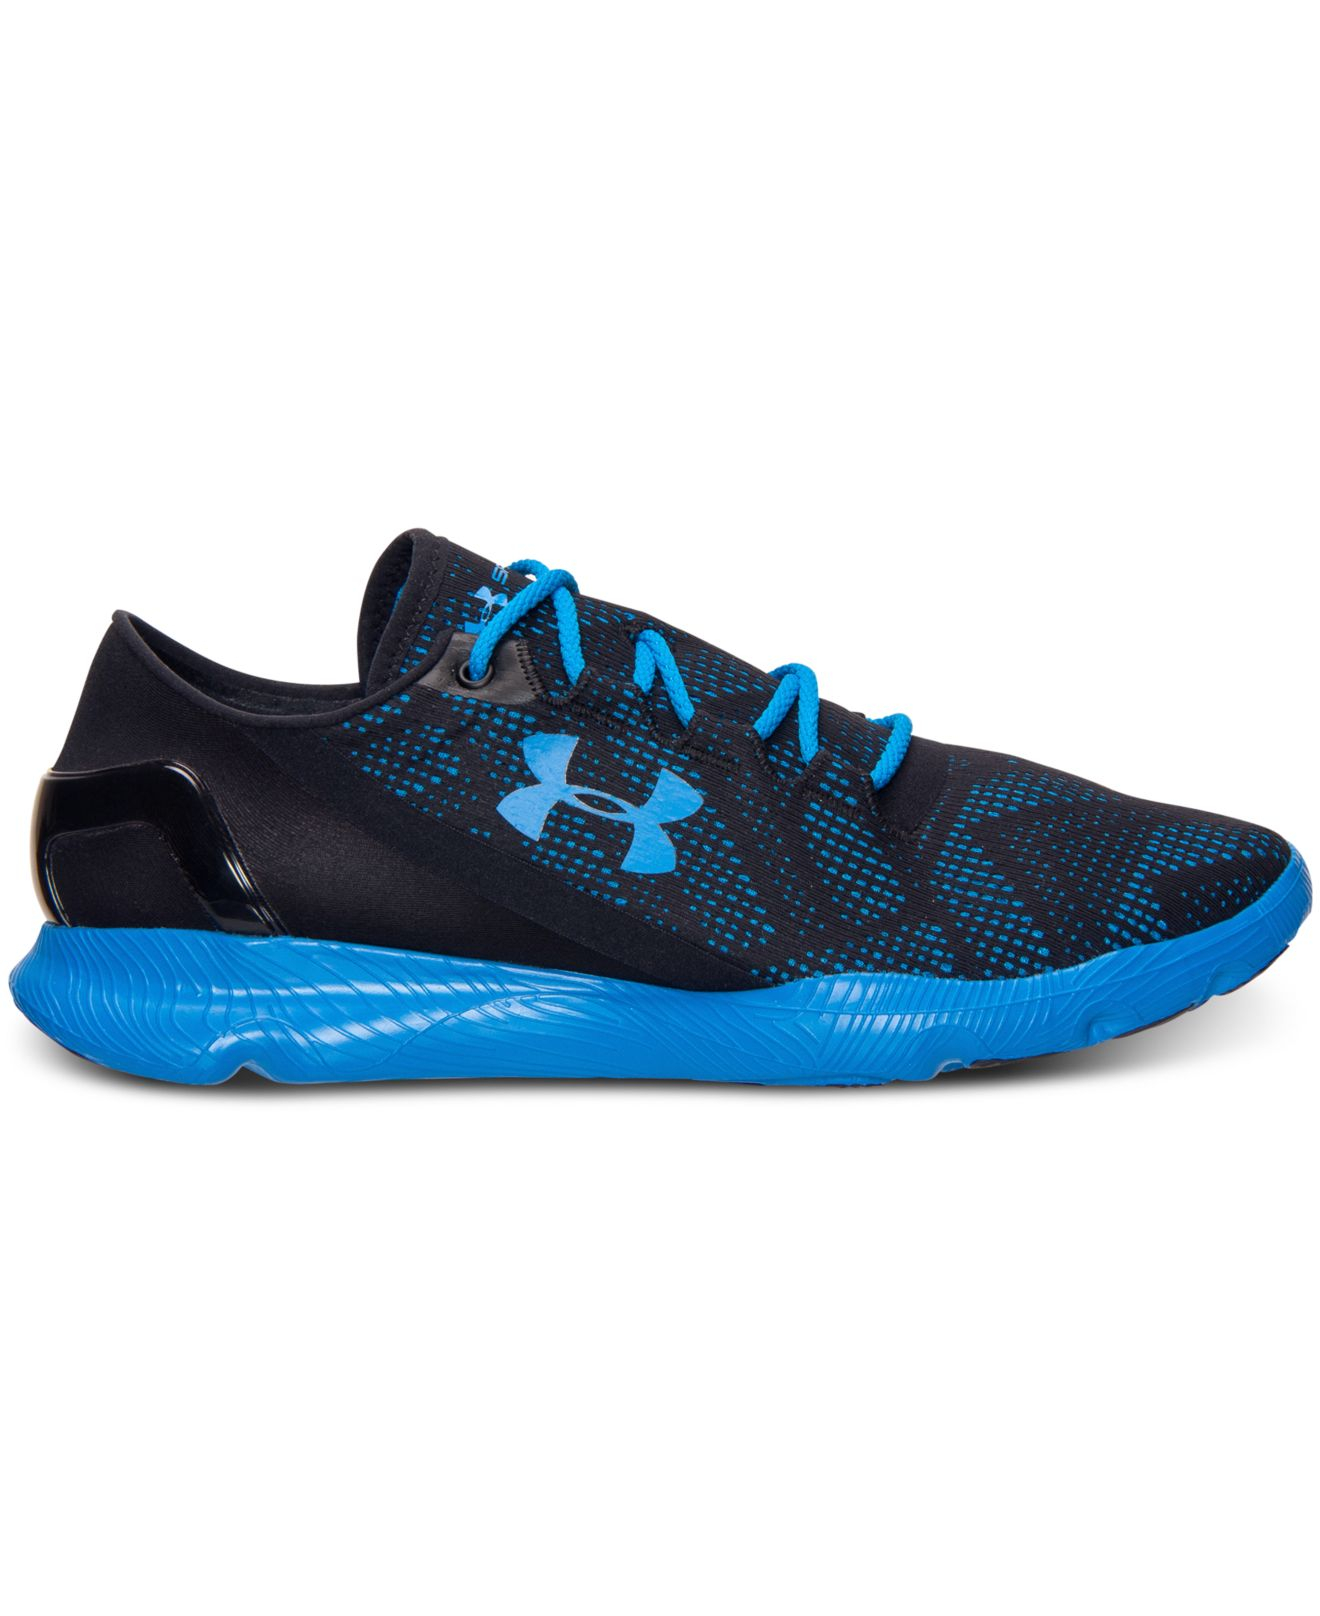 Under Armour Men S Speedform Apollo Vent Running Sneakers